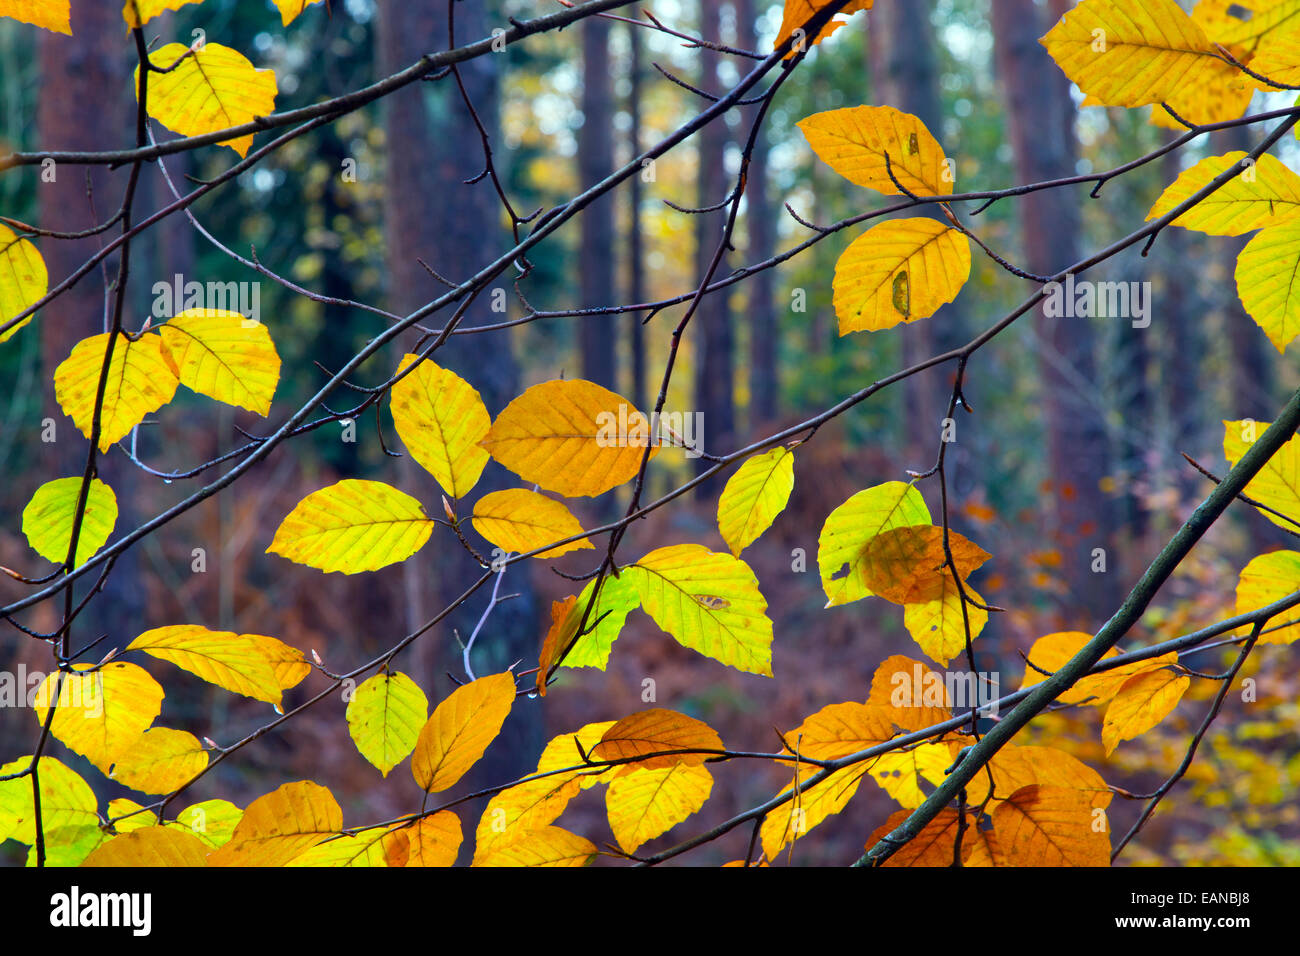 Beech Fagus sylvatica leaves changing colour in Autumn - Stock Image